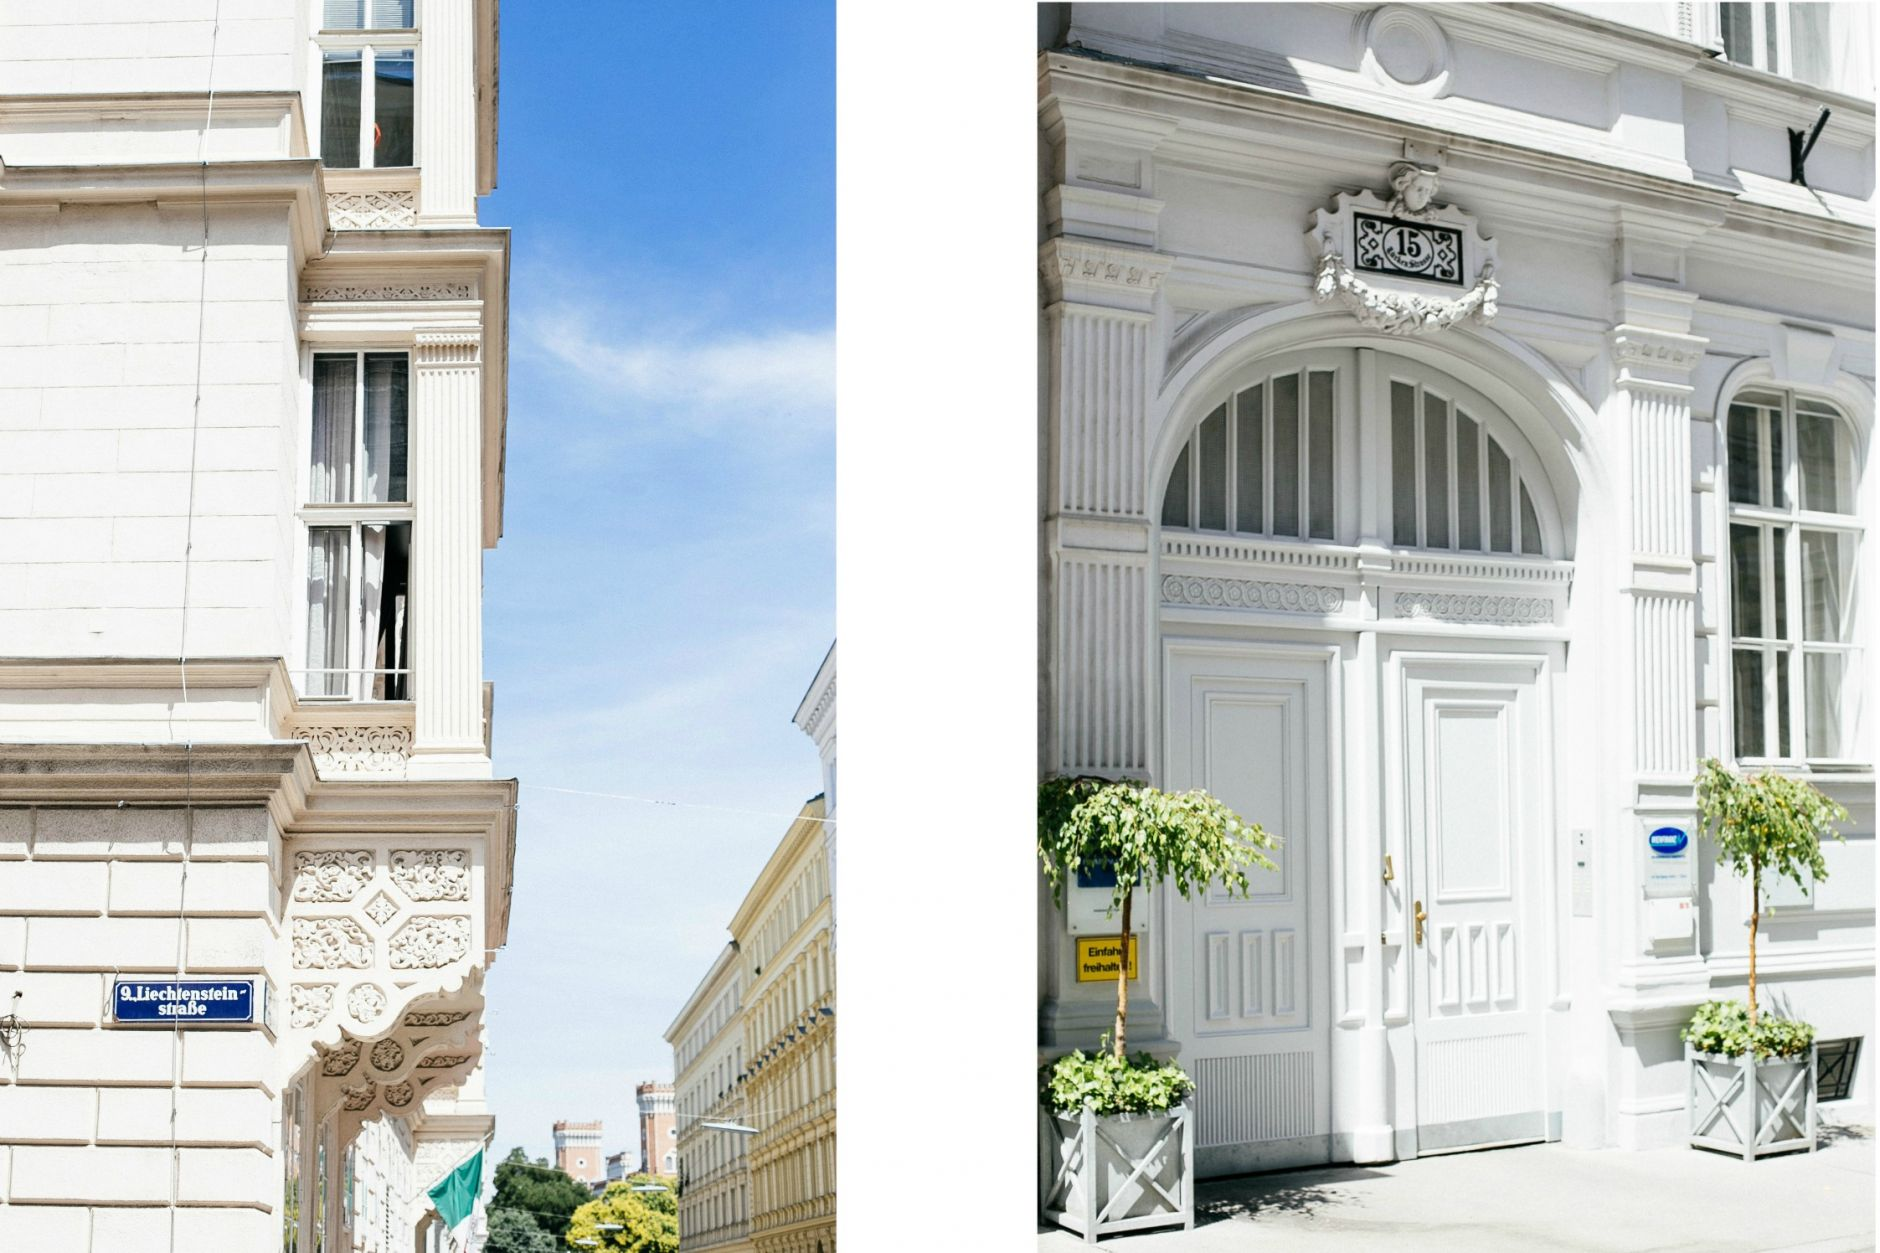 airbnb-hosting-vienna-austria-appartments-for-rent-disicouture-104